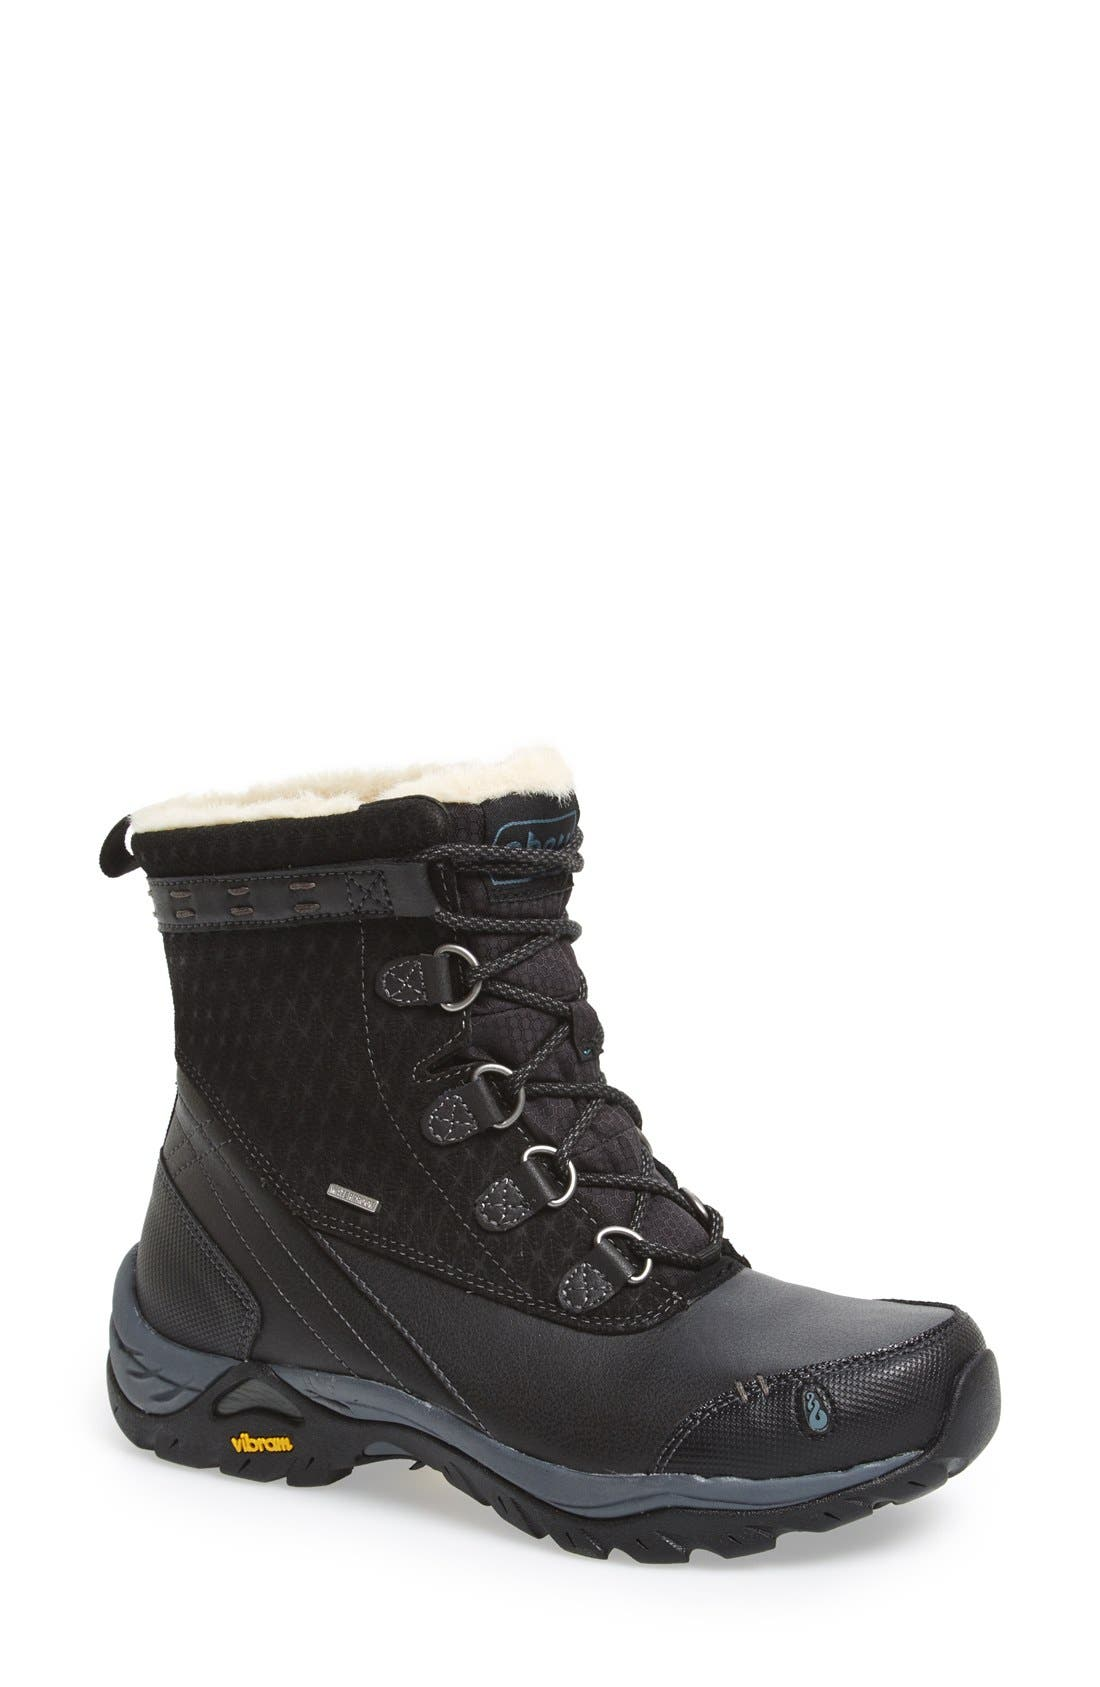 Main Image - Ahnu 'Twain Harte' Insulated Waterproof Boot (Women)